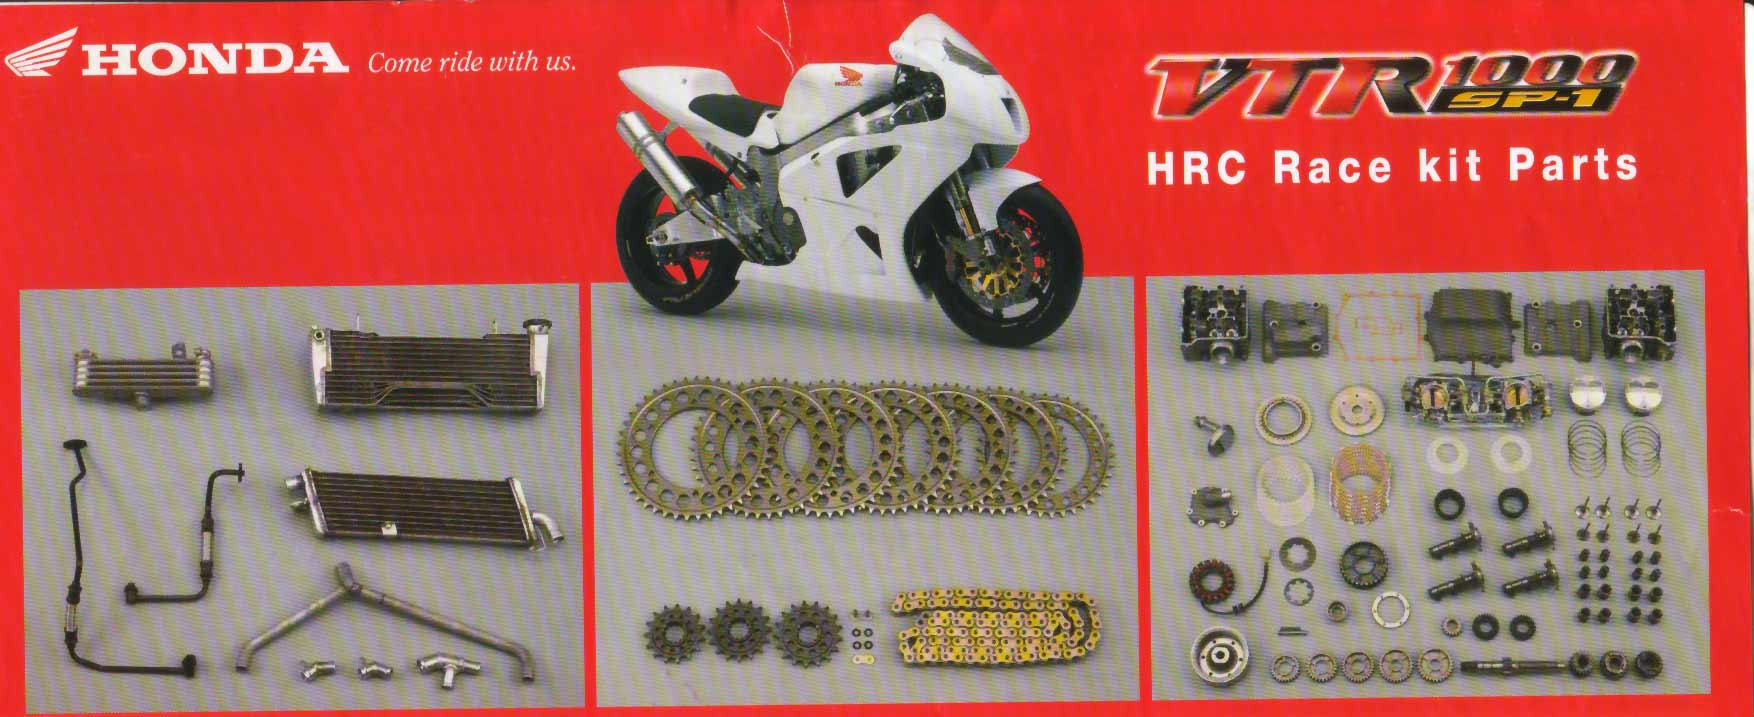 Honda Cbr600 1991 1994 Service Manual additionally Motogadget M Unit Wiring additionally 1990 Ford F 150 Fuel Pump Wiring Diagram together with Car Diagram Overview additionally Basic Honda 4 Cylinder Motorcycle. on honda wiring diagram